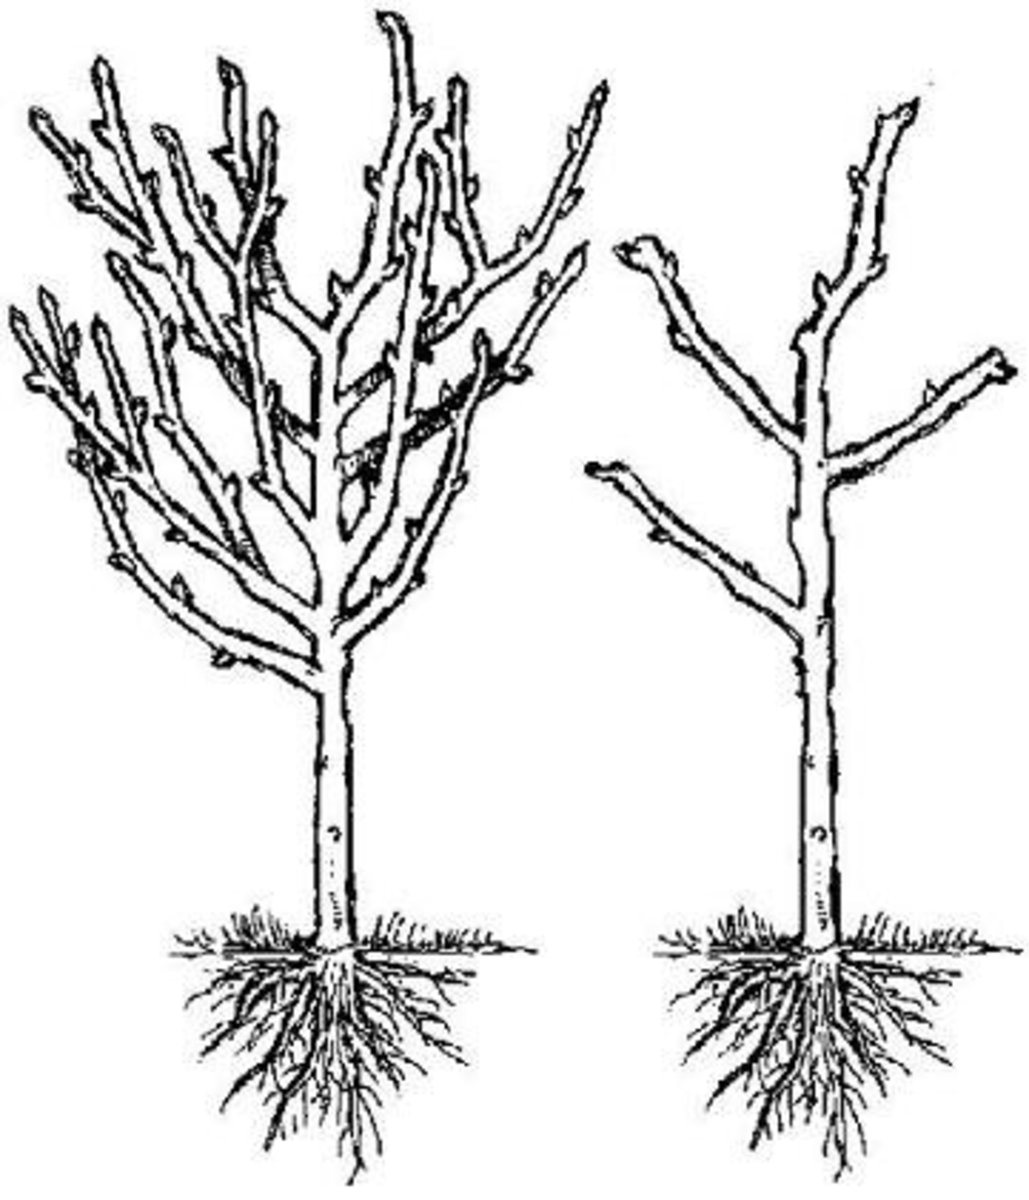 Pruned vs. unpruned: A pruned tree is stronger, healthier, and produces better fruit.